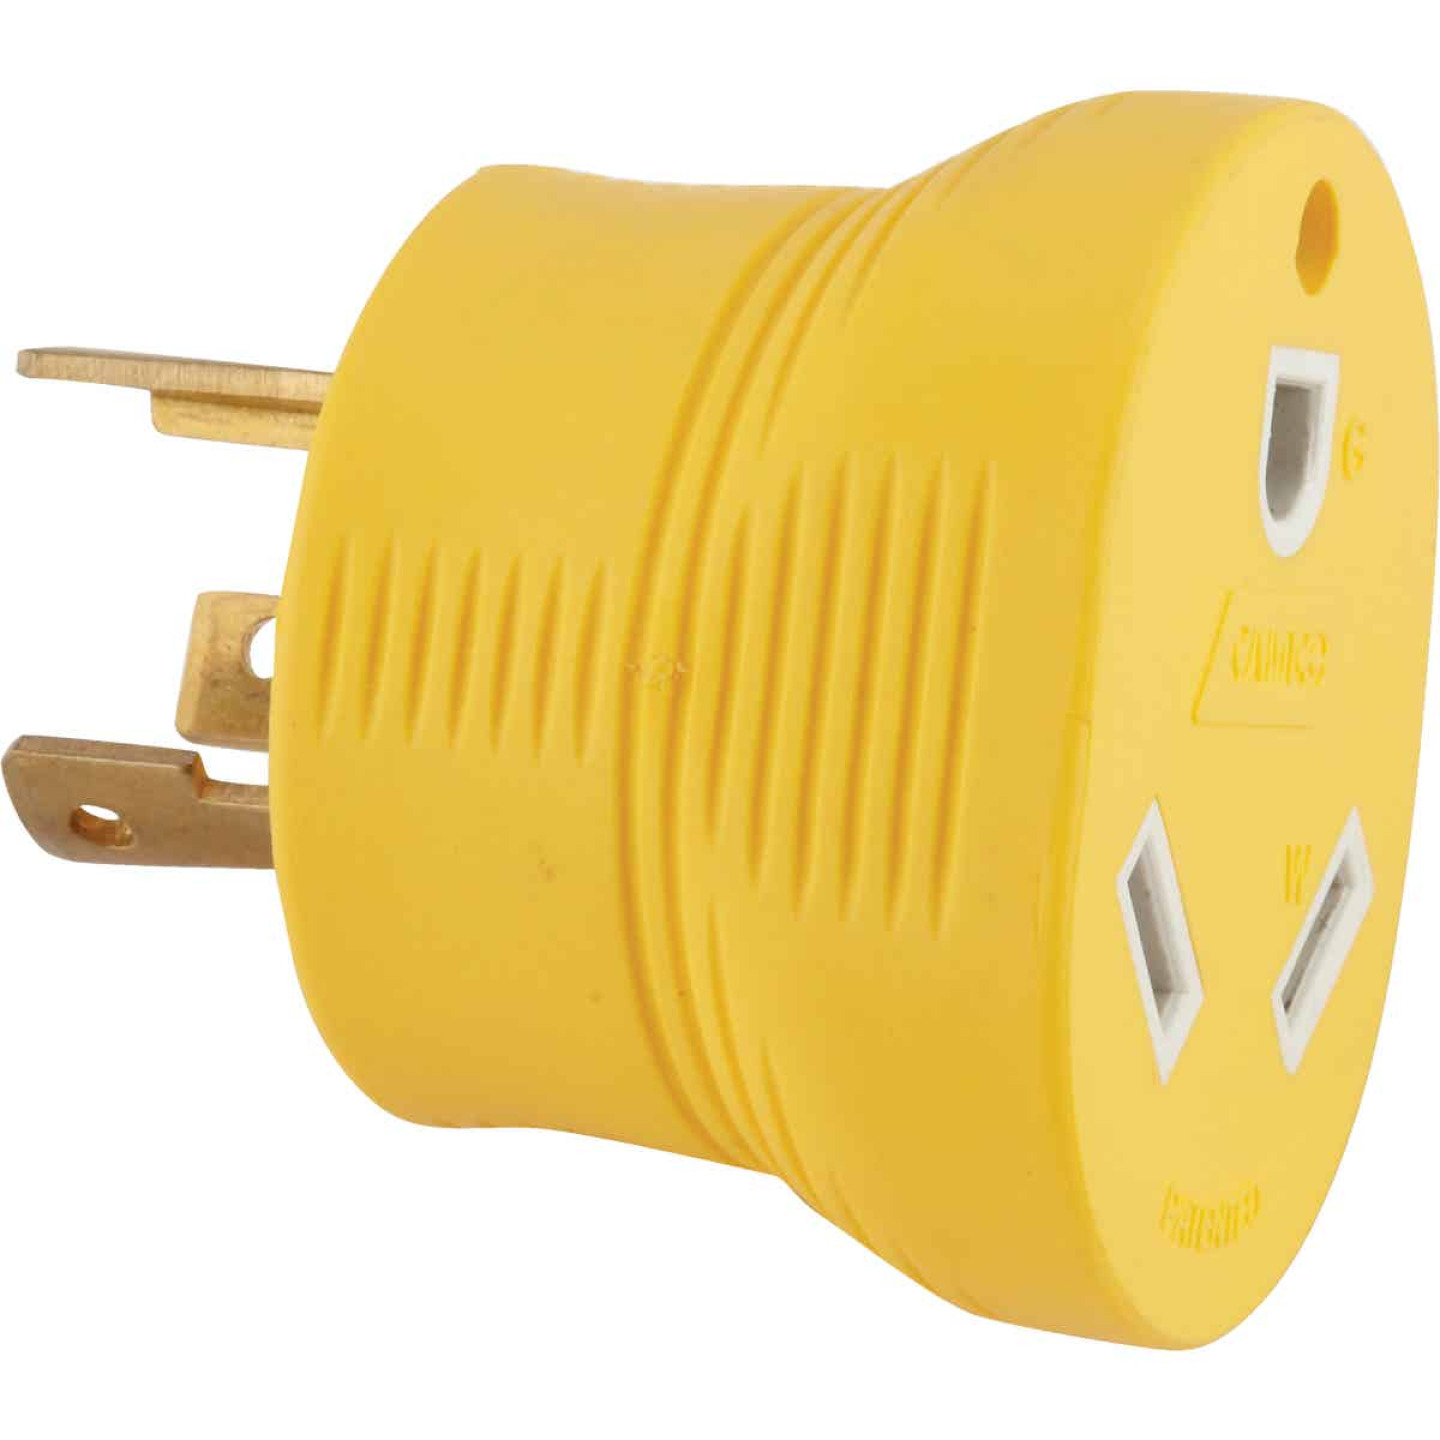 Camco Power Grip 30-Amp 3-Prong RV Generator Adapter Image 1